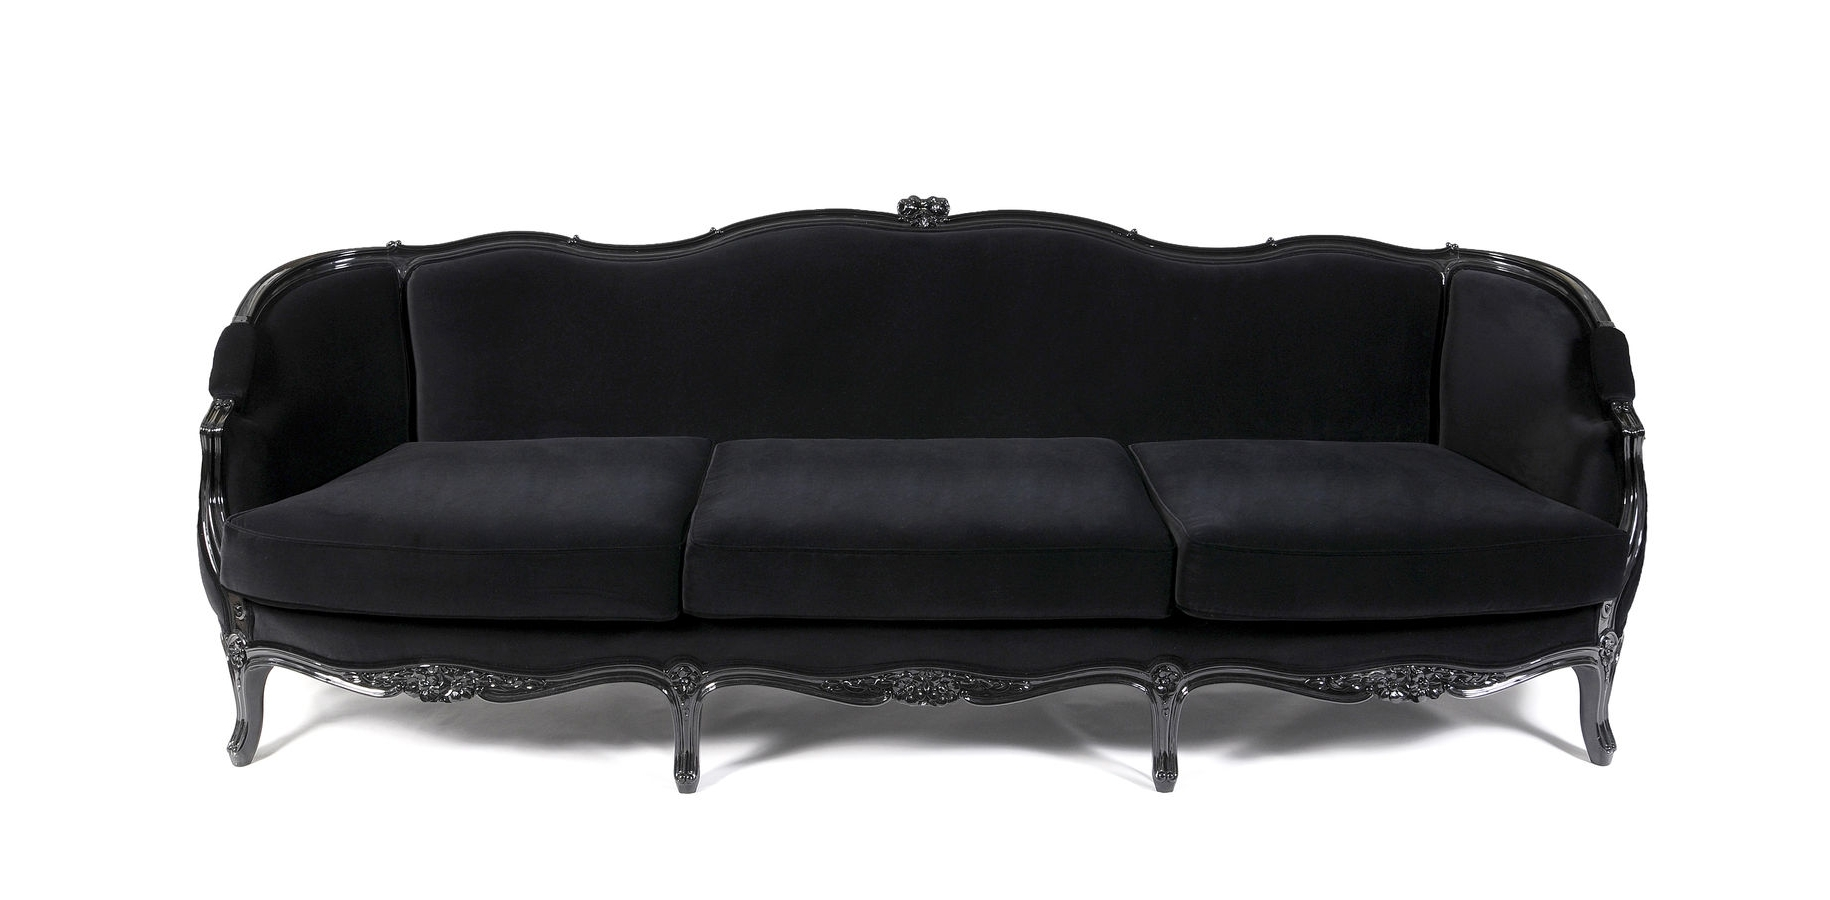 Gothic Sofas In 2019 Sofa : Gothic Desk Gothic Couch Gothic Room Decor Gothic Sofas For (View 13 of 20)